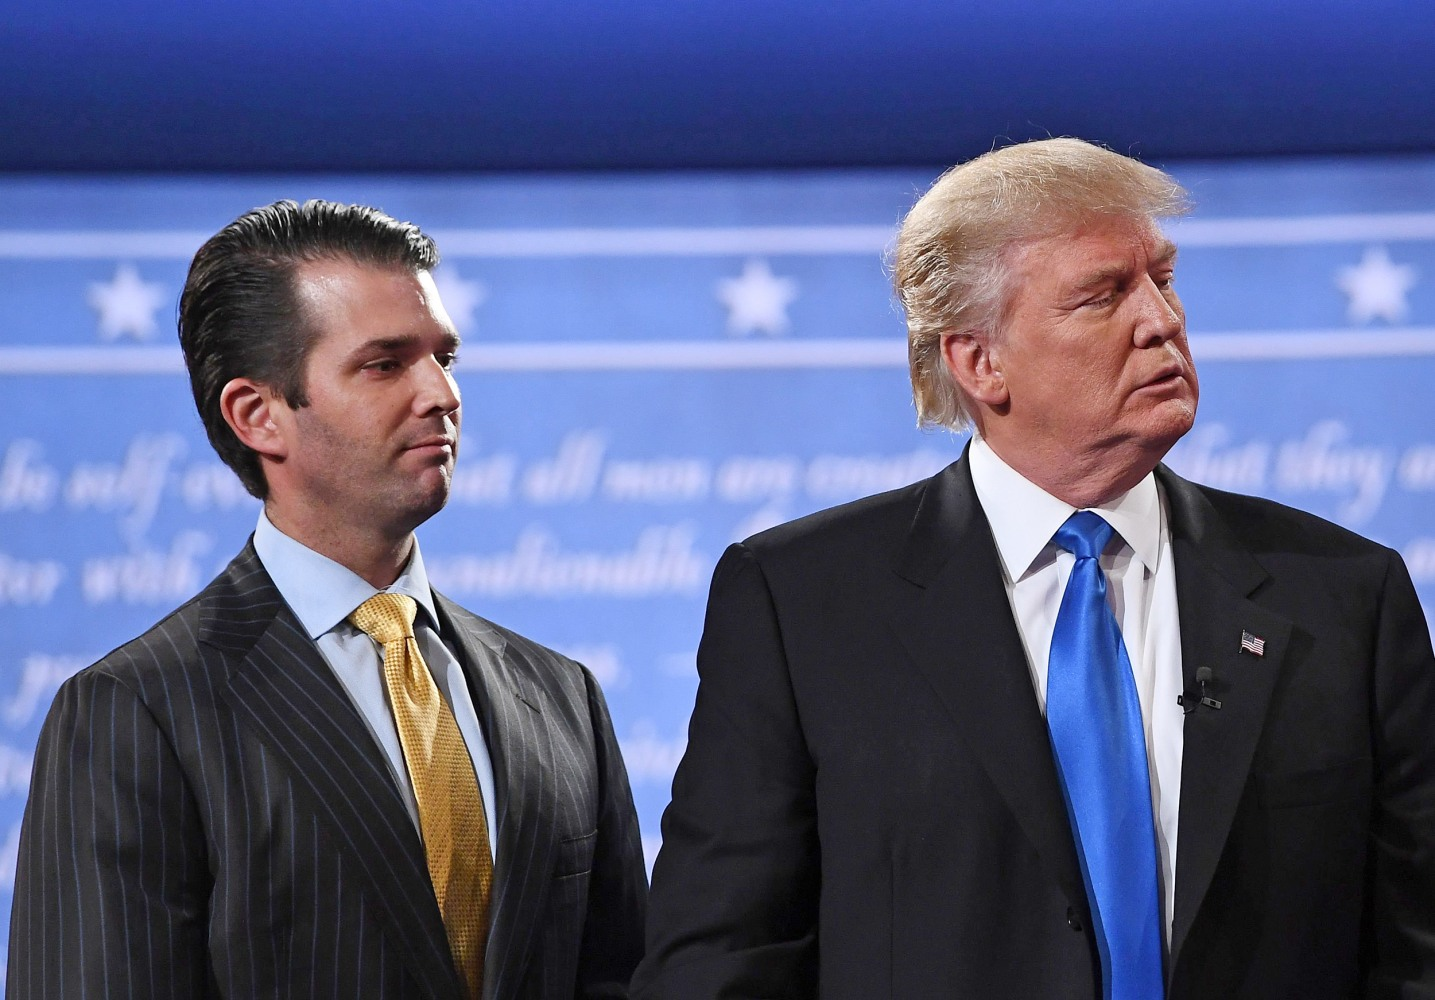 Trump Jr. Invokes Attorney-Client Privilege with His Father